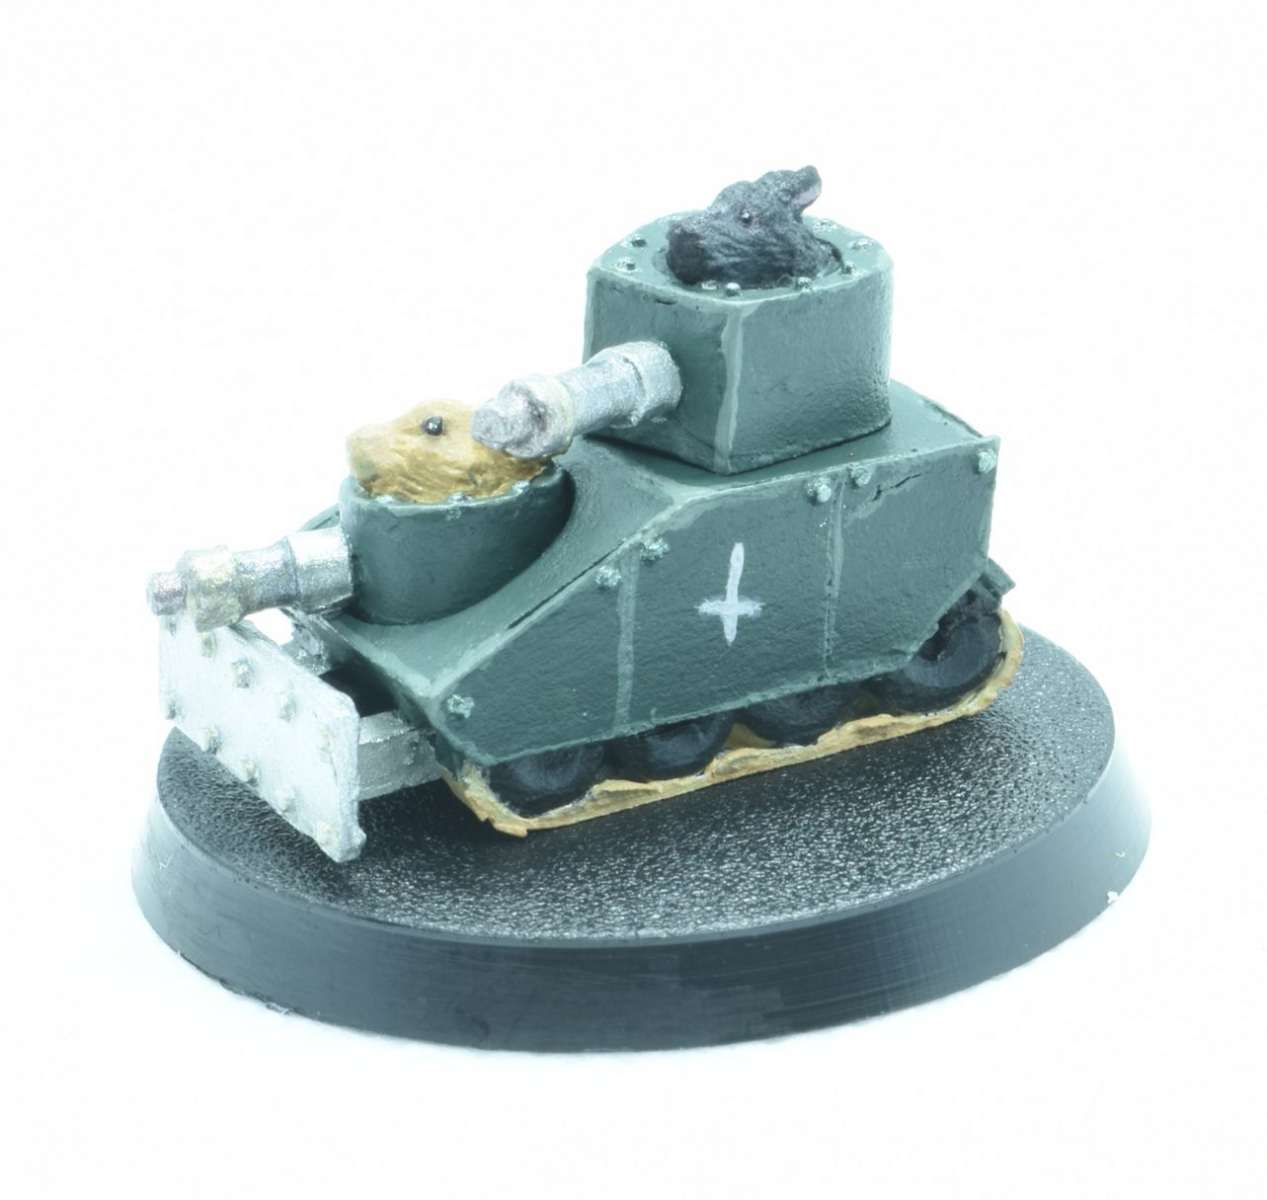 Bunny Tank from BadSquiddo Games painted by Wulfhildr